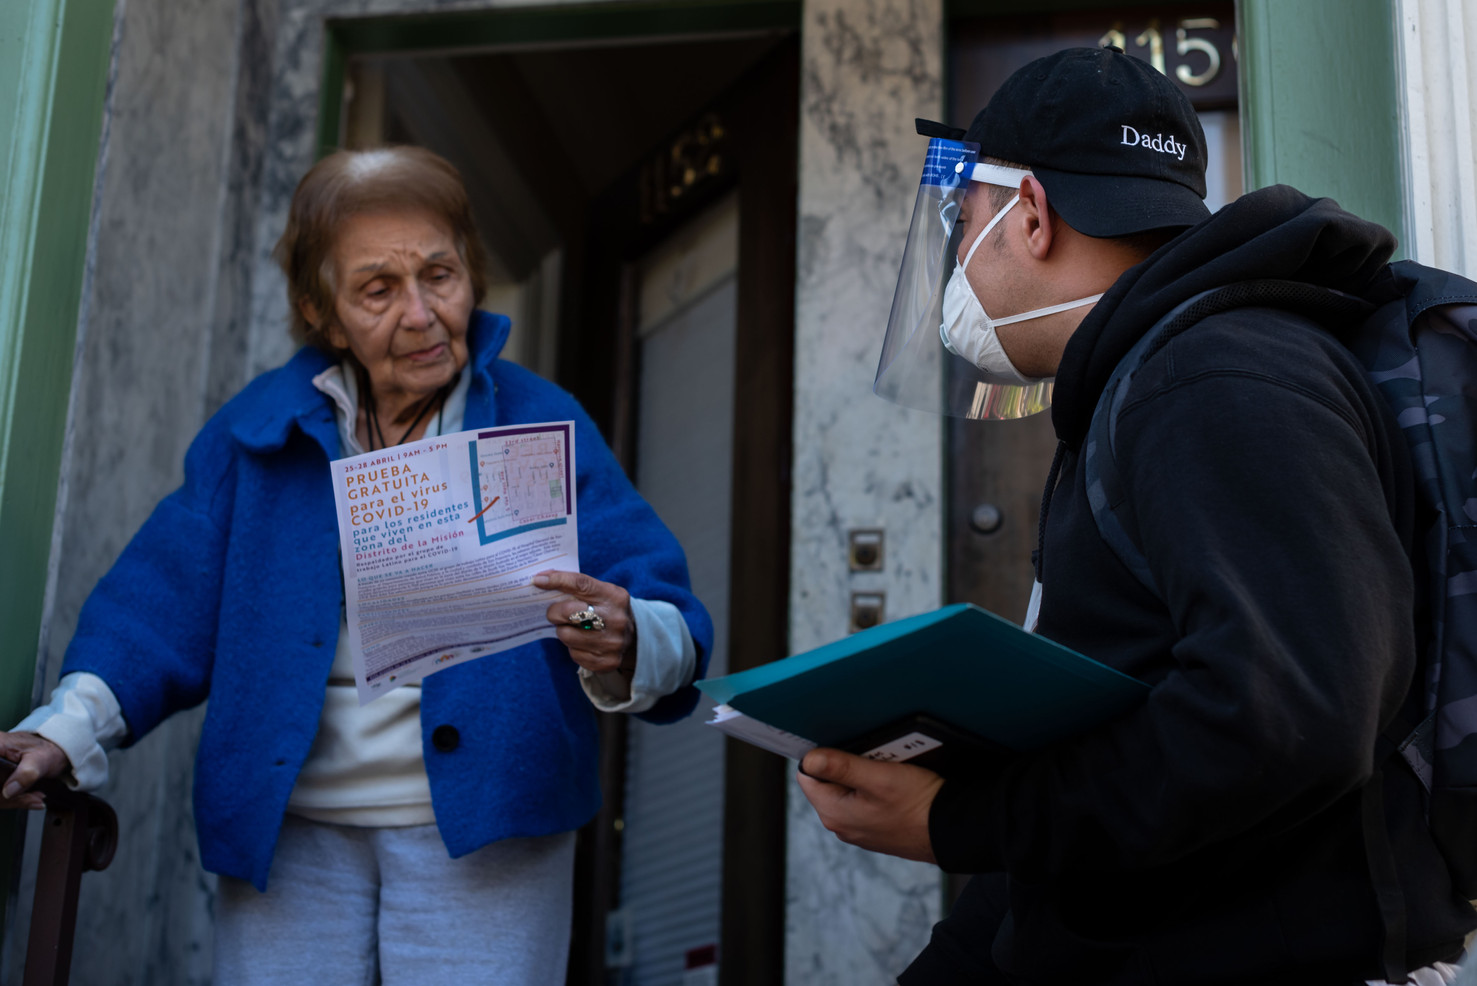 Rafael Gonzalez, an AIDS researcher with the City of San Francisco canvasses door-to-door urging and pre-registering residents in the Mission neighborhood of San Francisco for free mass COVID-19 testing.